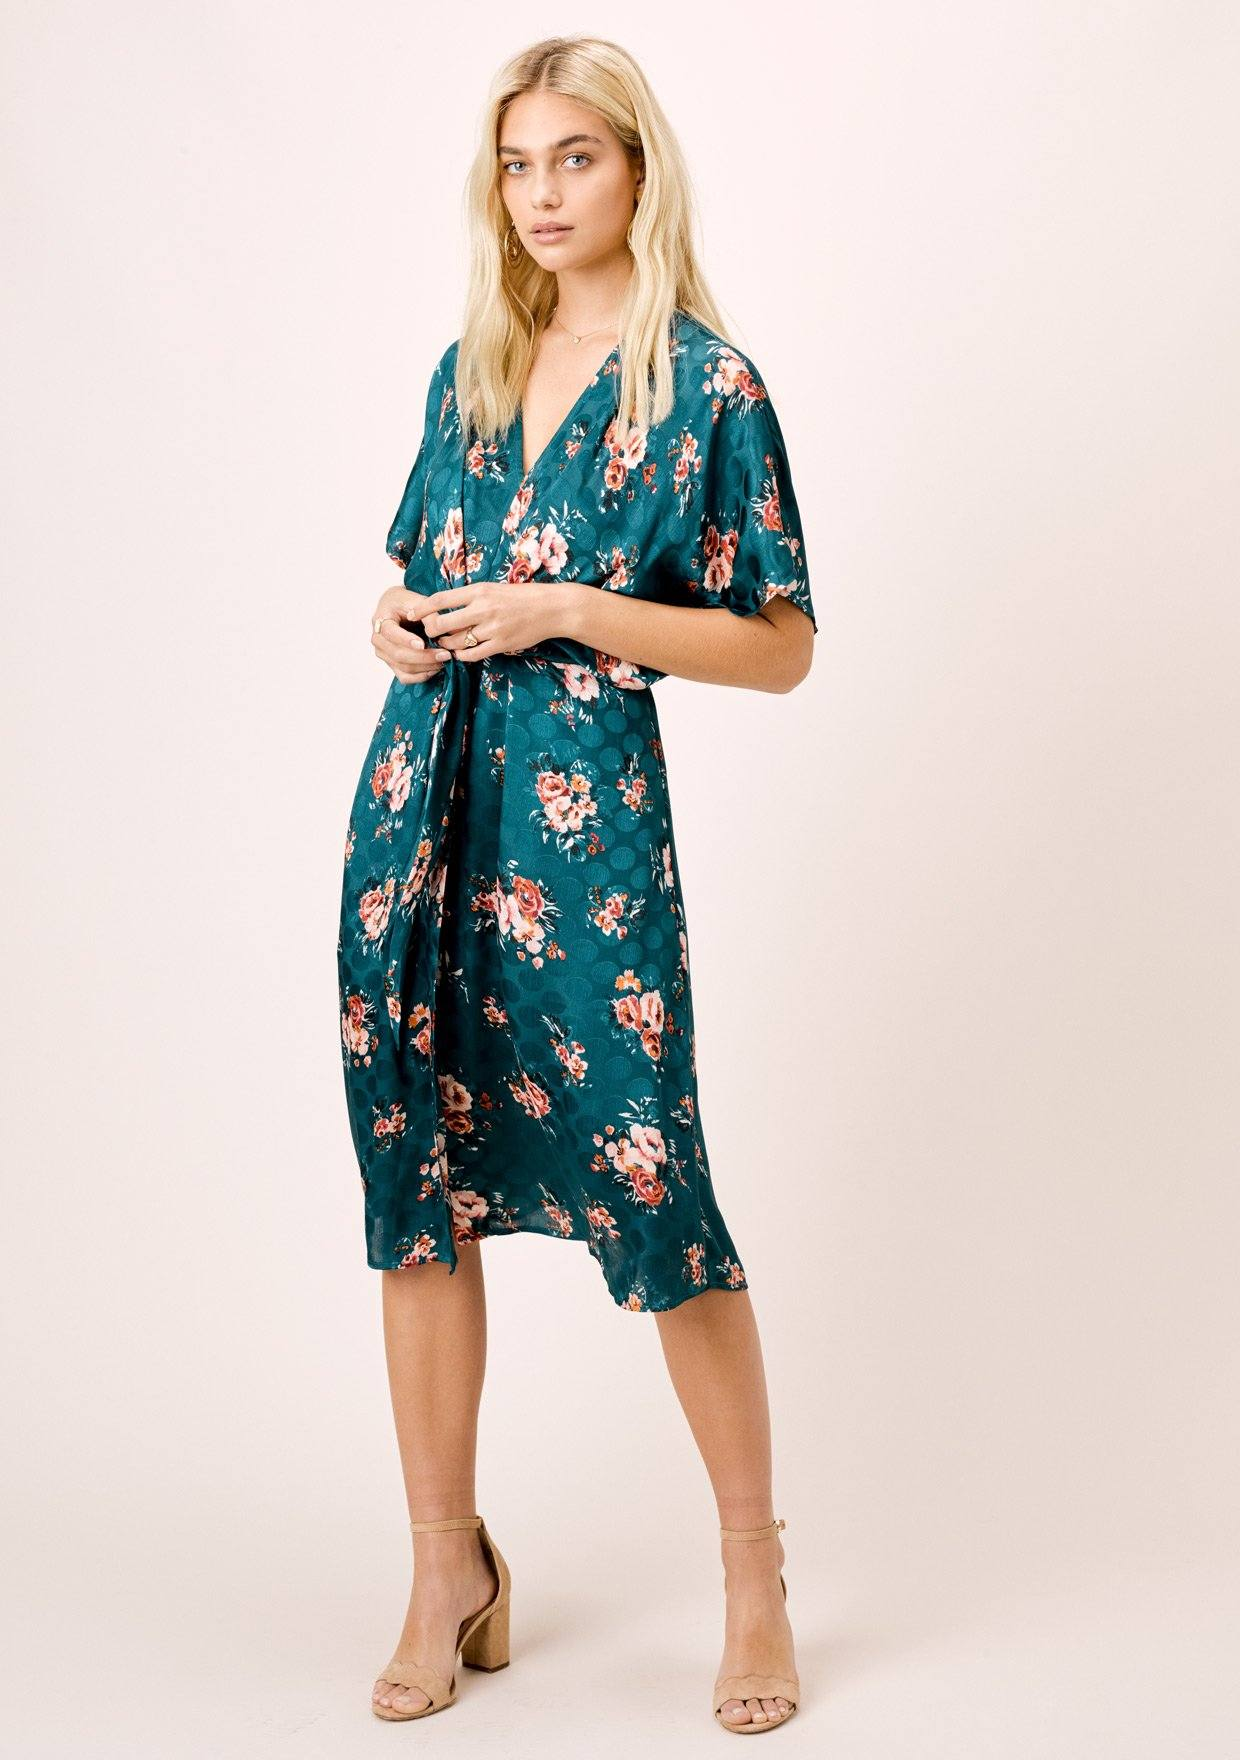 [Color: Teal/Rose] Lovestitch teal/rose watercolor rose printed, dolman midi dress with tie front.